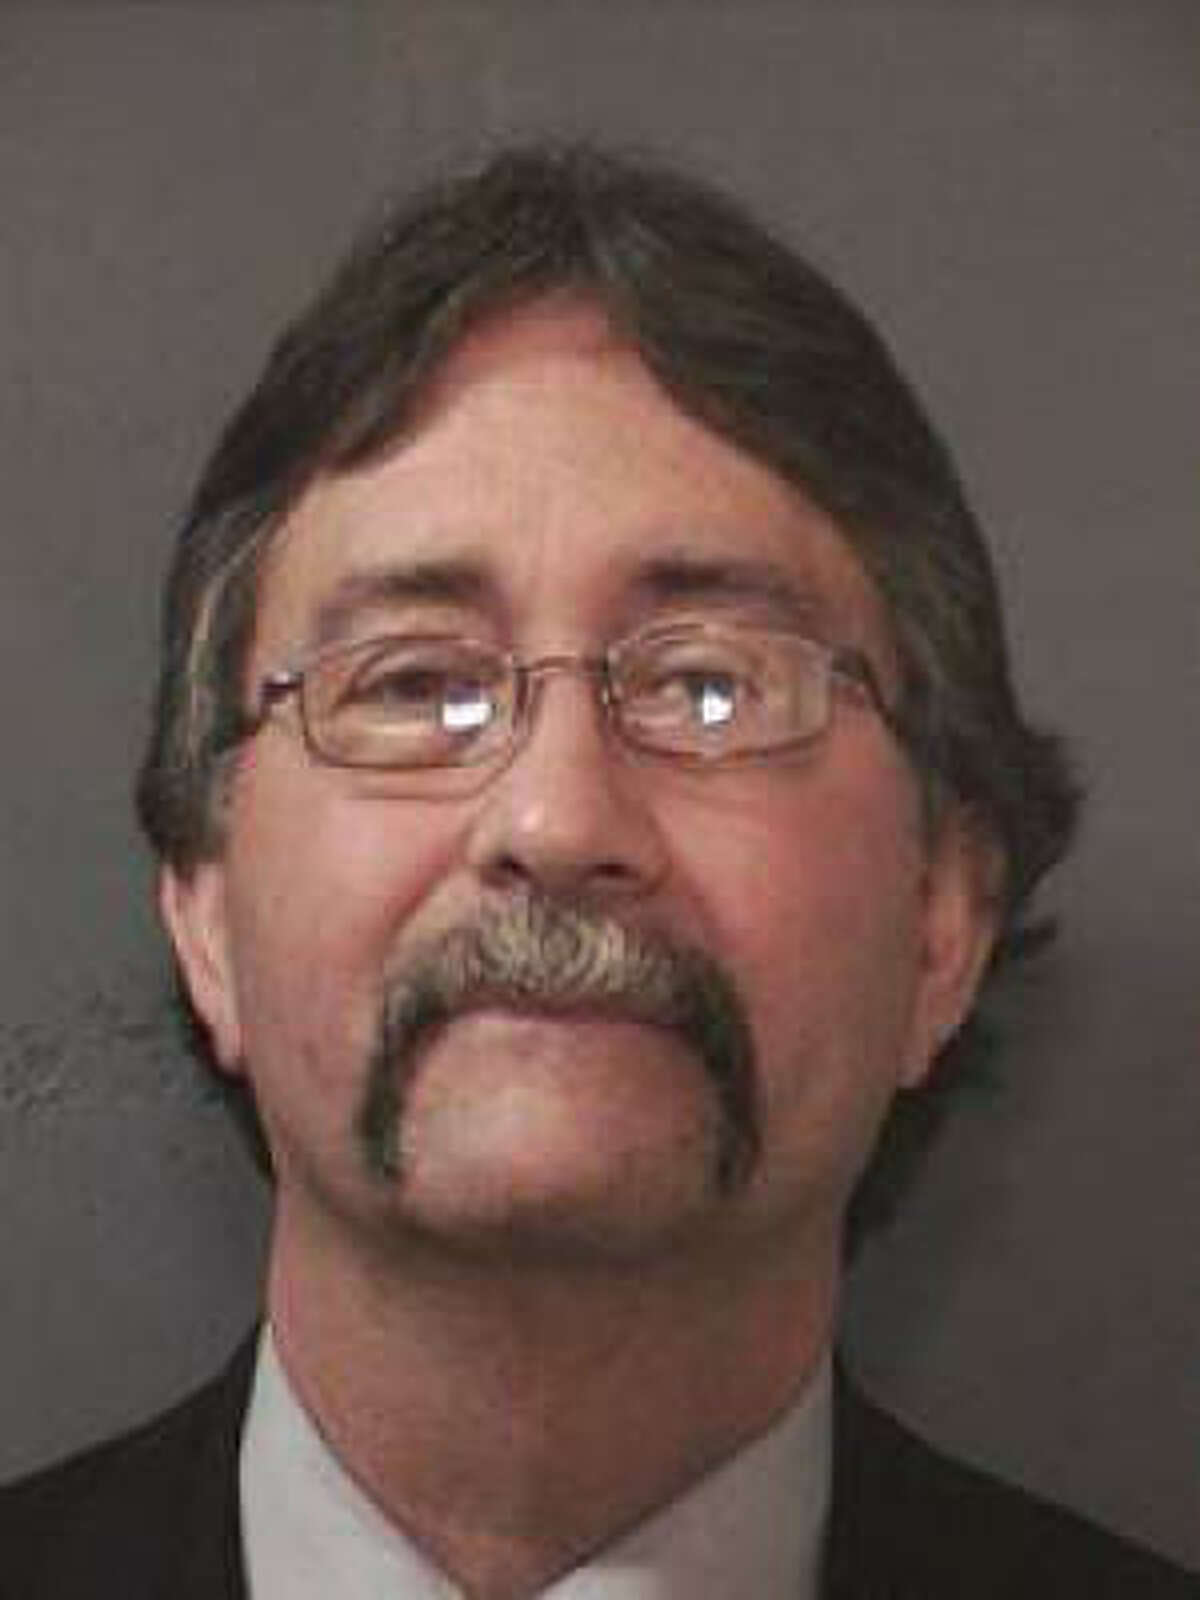 Donald W. Jackson will plead not guilty at his court appearance, his lawyer says.